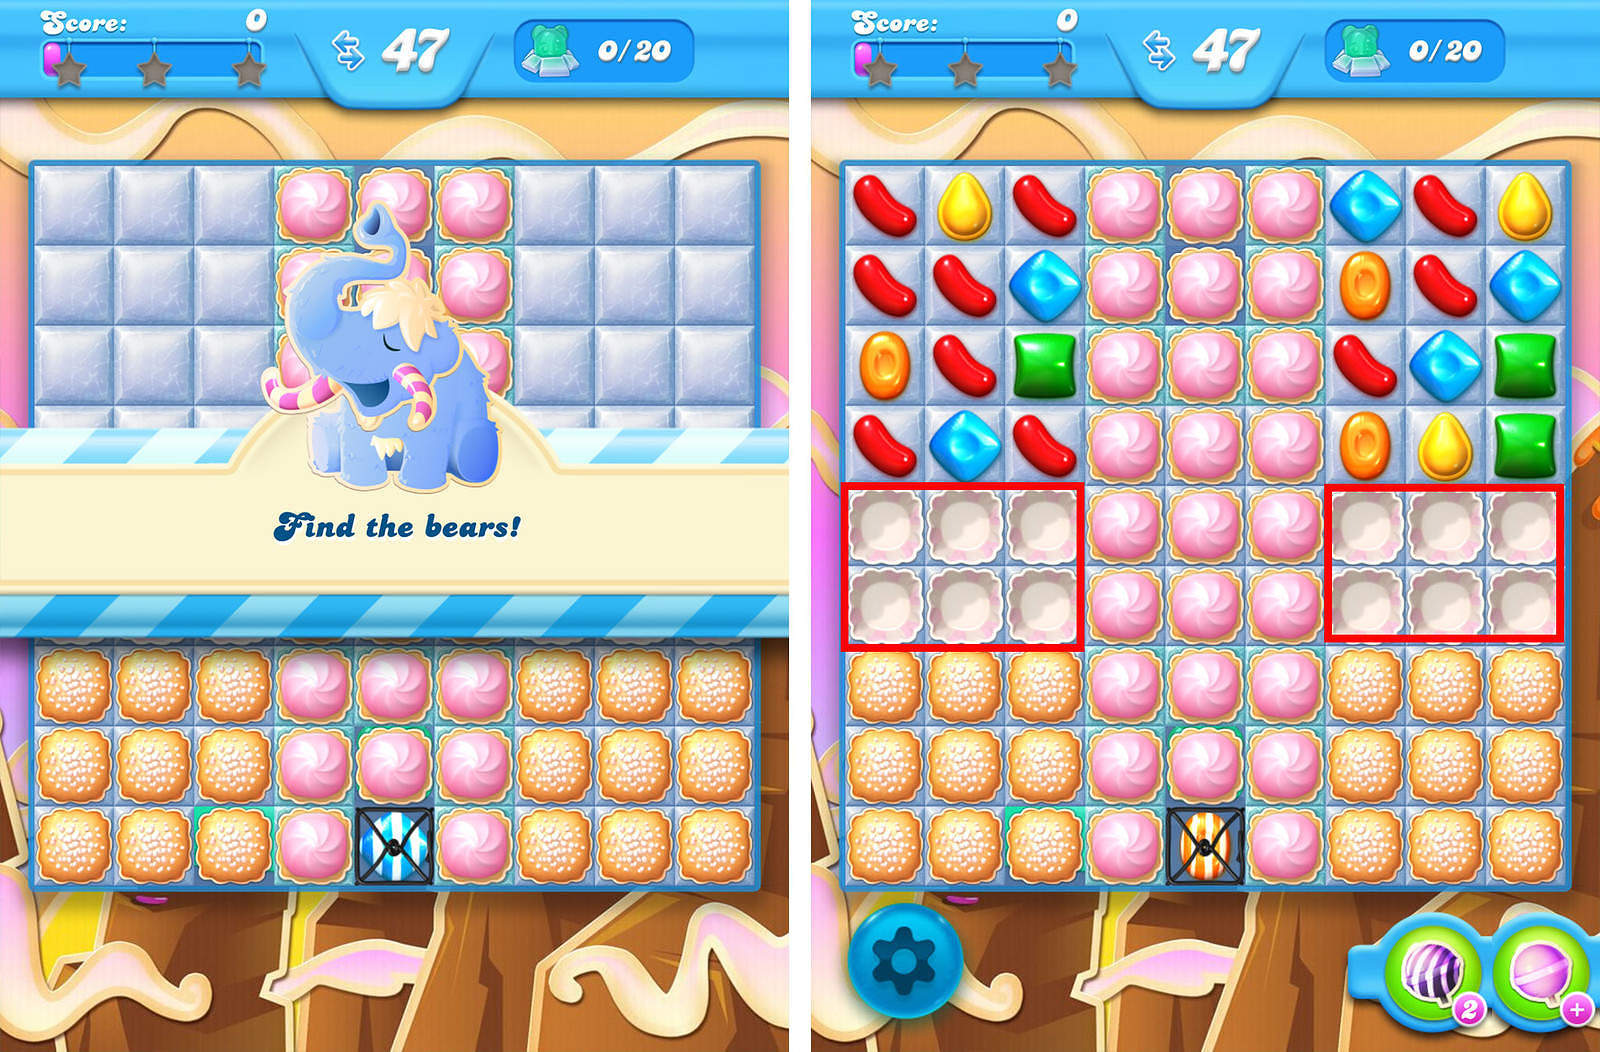 Candy Crush Soda Livello 70